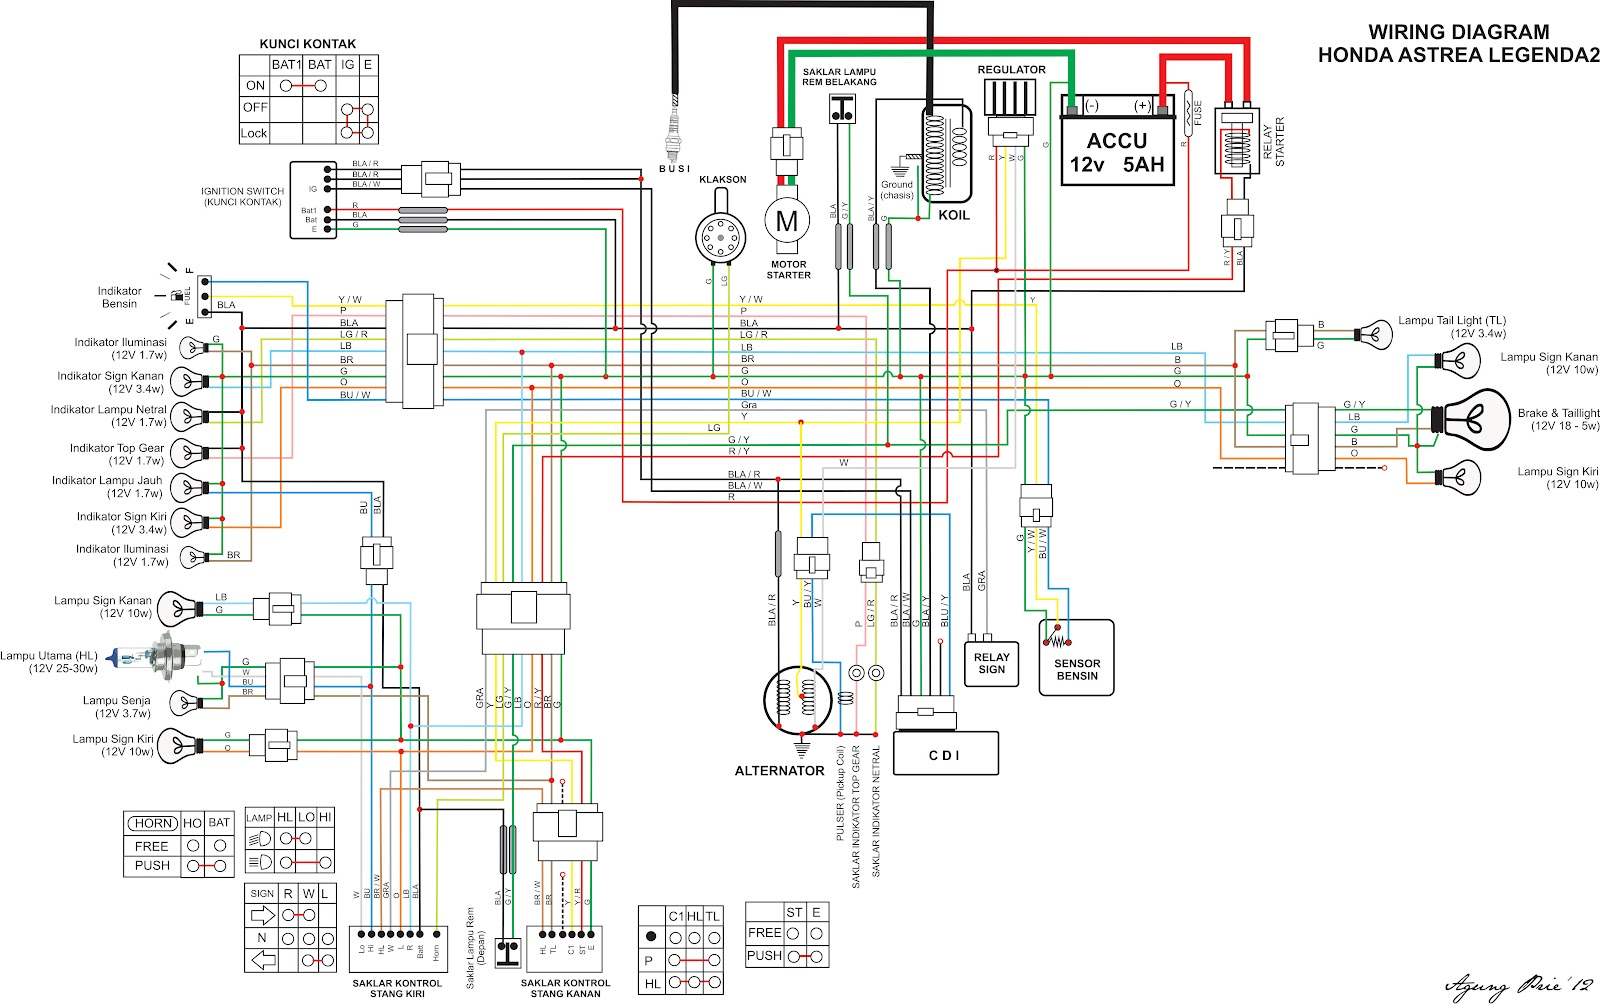 kelistrikan+honda+legenda honda dio 2 wiring diagram honda wiring diagrams instruction honda c90 wiring diagram at alyssarenee.co